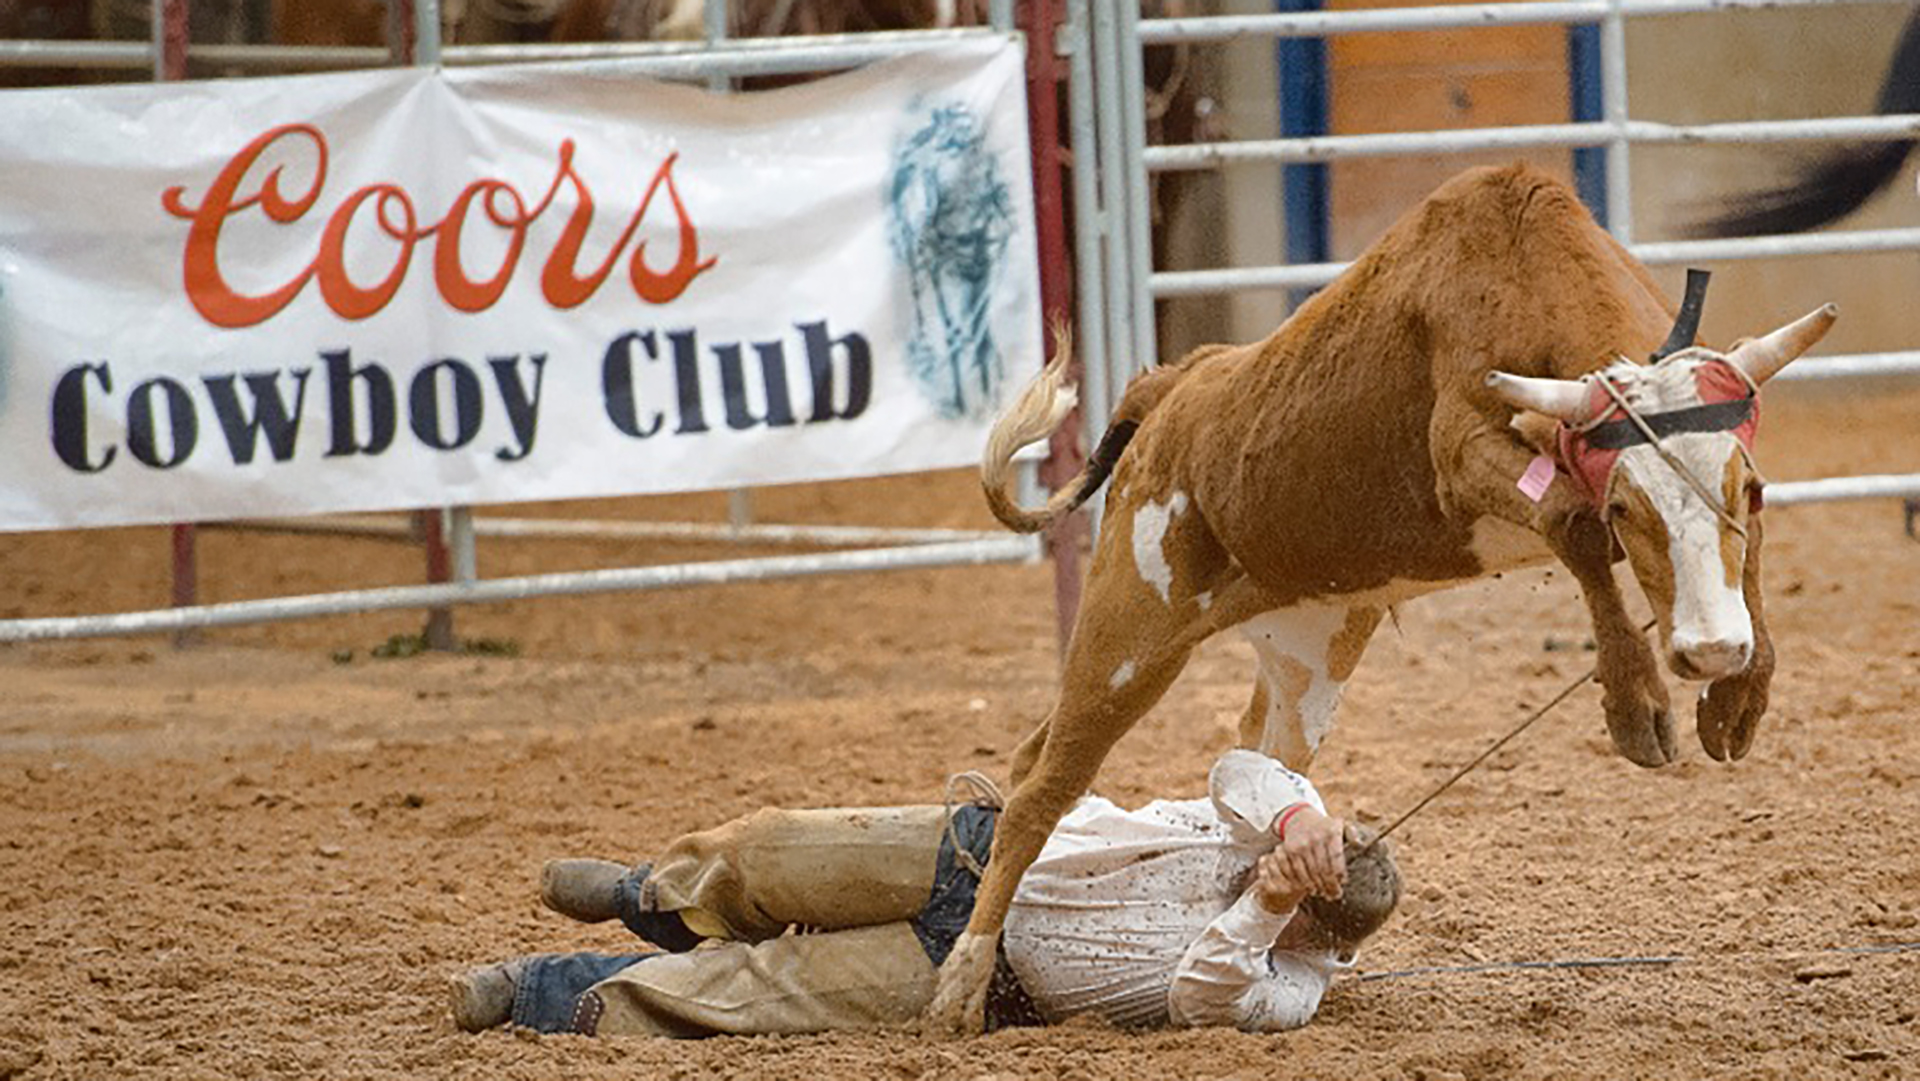 Play Here's Activity Roundup for May 31 to June 7, including Coors Ranch Rodeo, 'Texas,' DHDC's Aviation, more